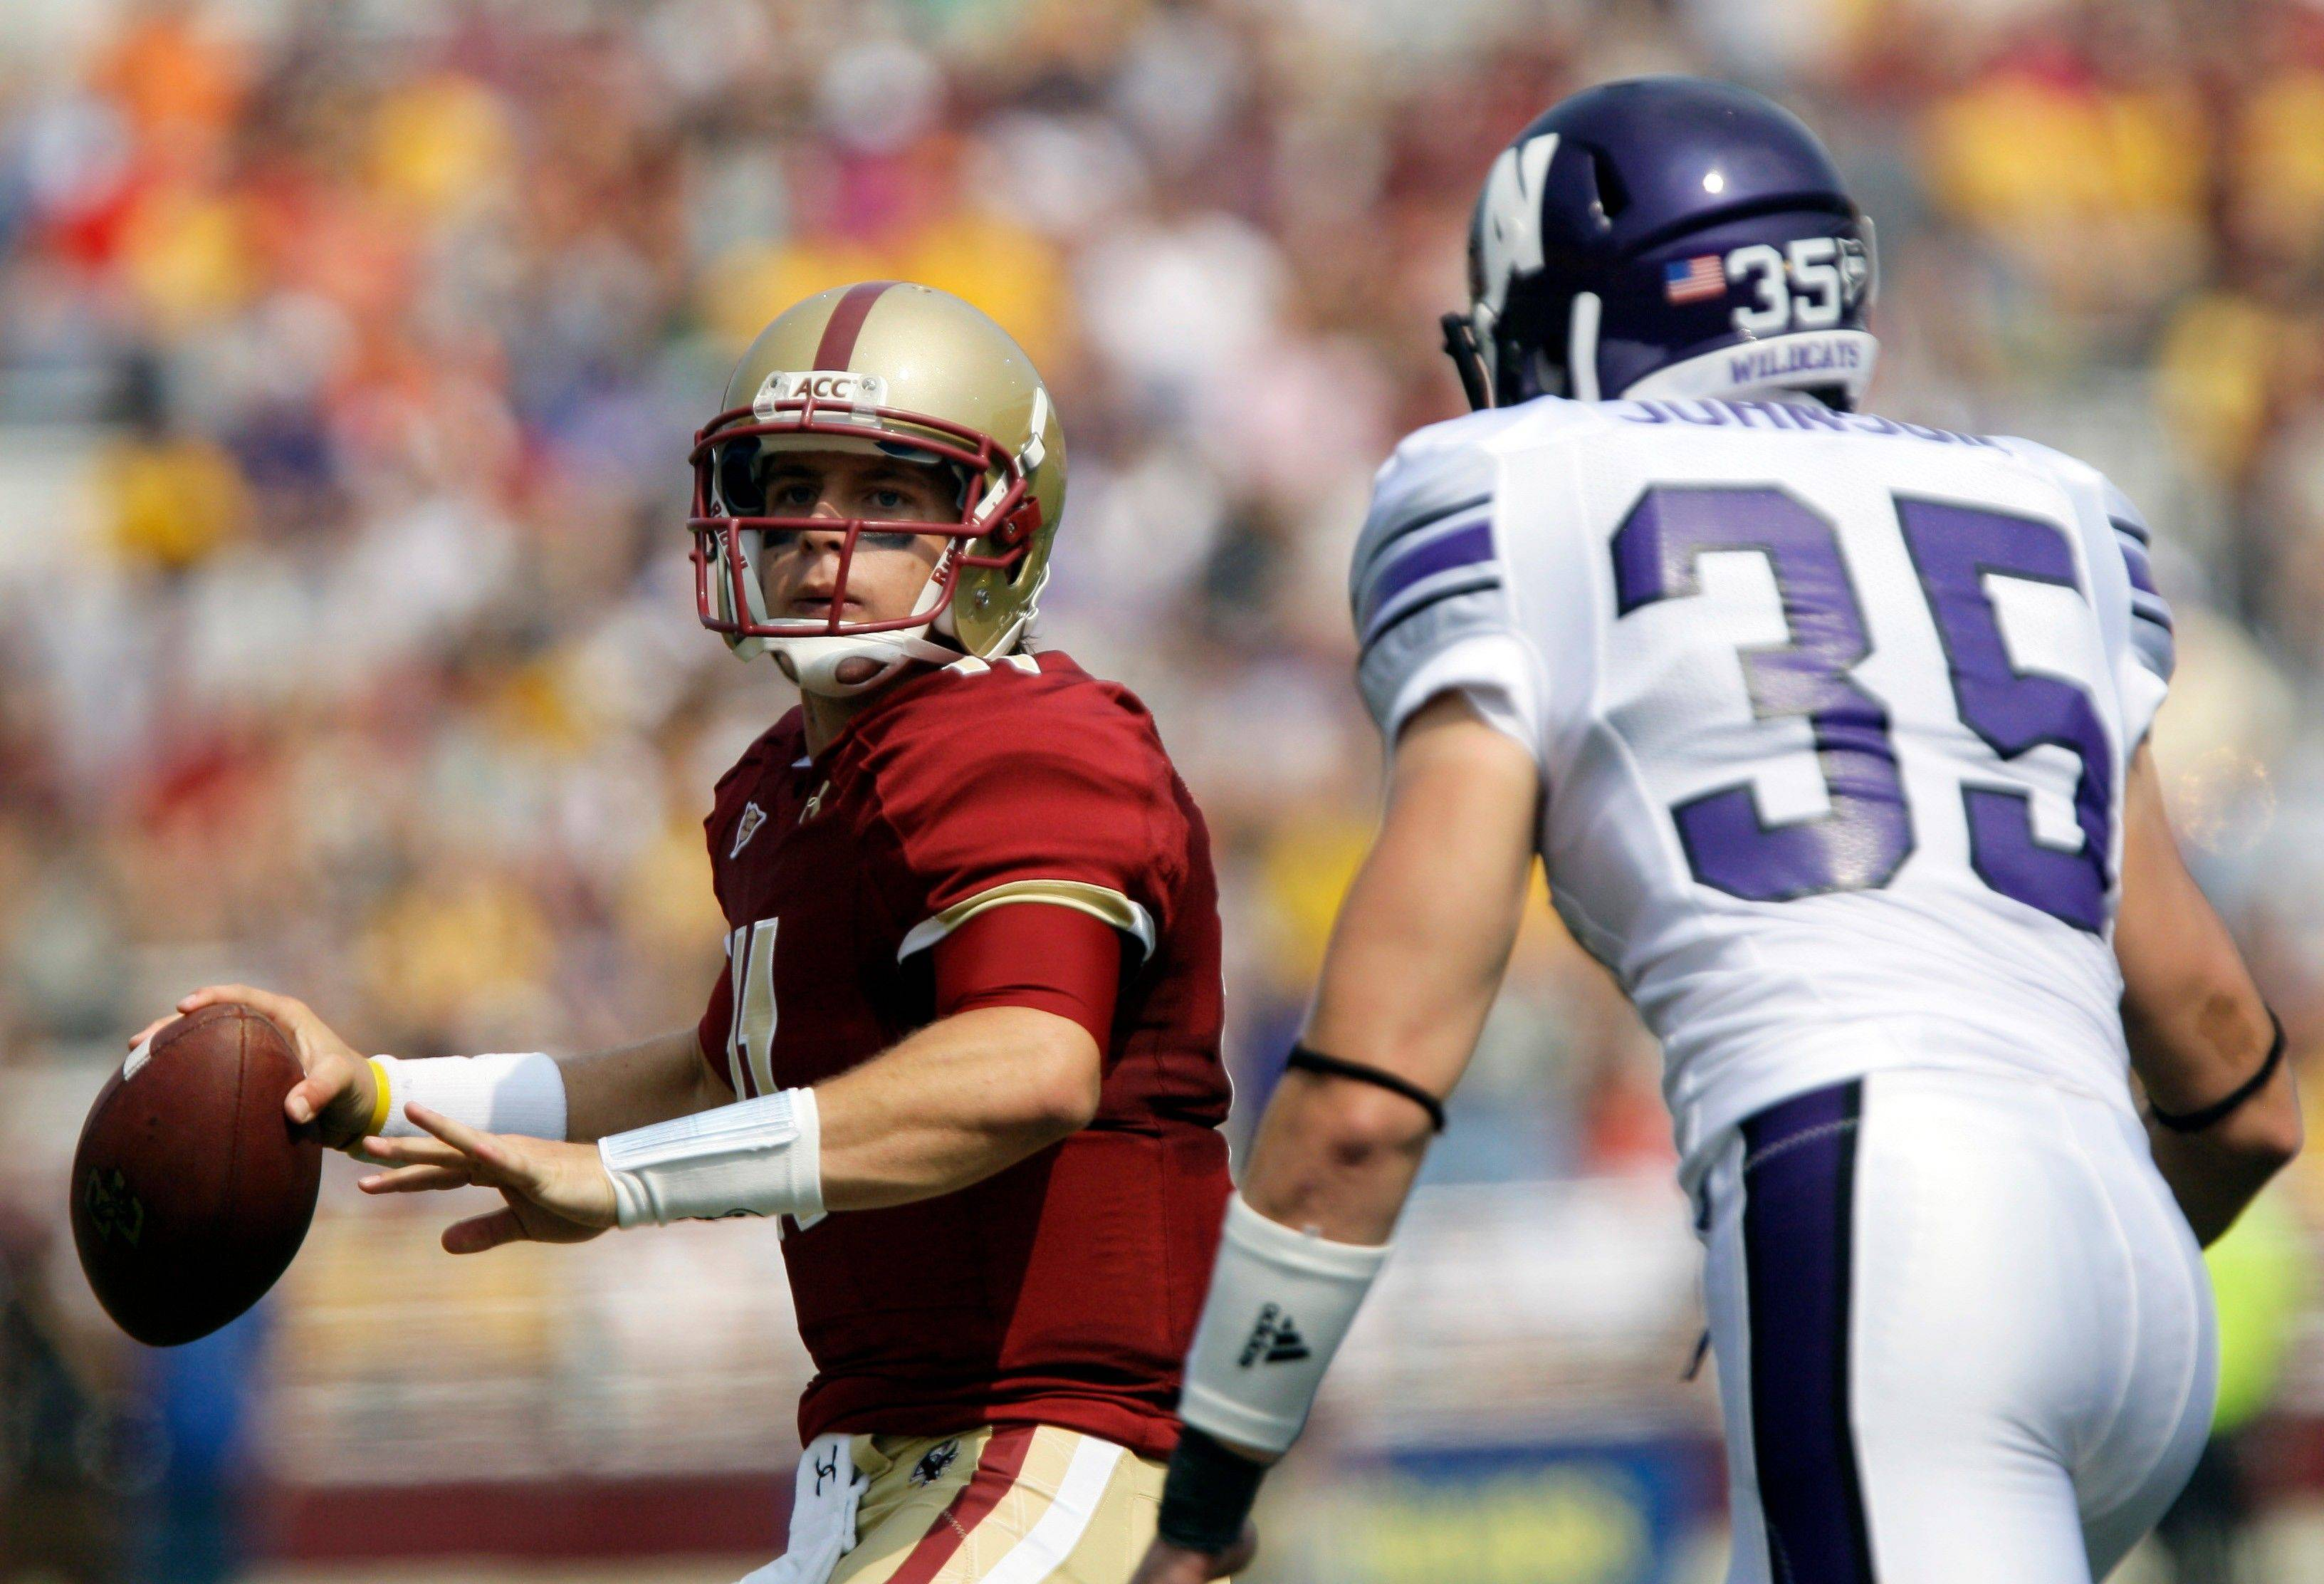 Boston College quarterback Chase Rettig looks to pass under pressure from Northwestern linebacker Ben Johnson (35) during the first half of an NCAA college football game, Saturday, Sept. 3, 2011, in Boston. (AP Photo/Mary Schwalm)